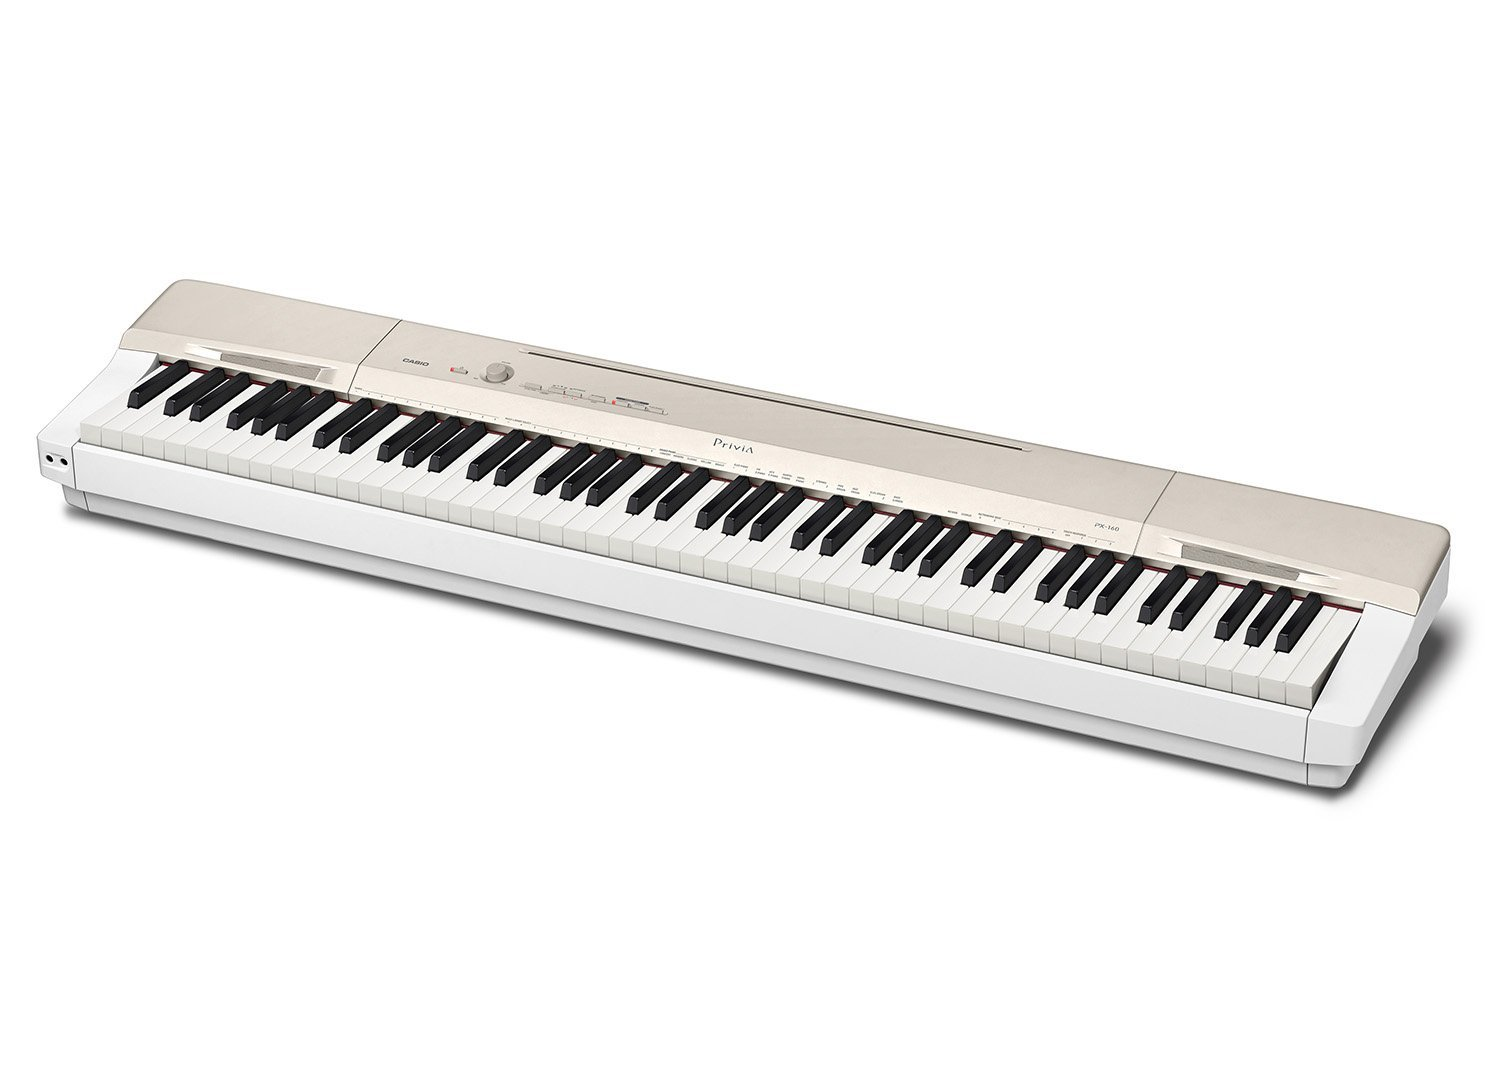 casio privia px160bk review feature packed digital piano. Black Bedroom Furniture Sets. Home Design Ideas